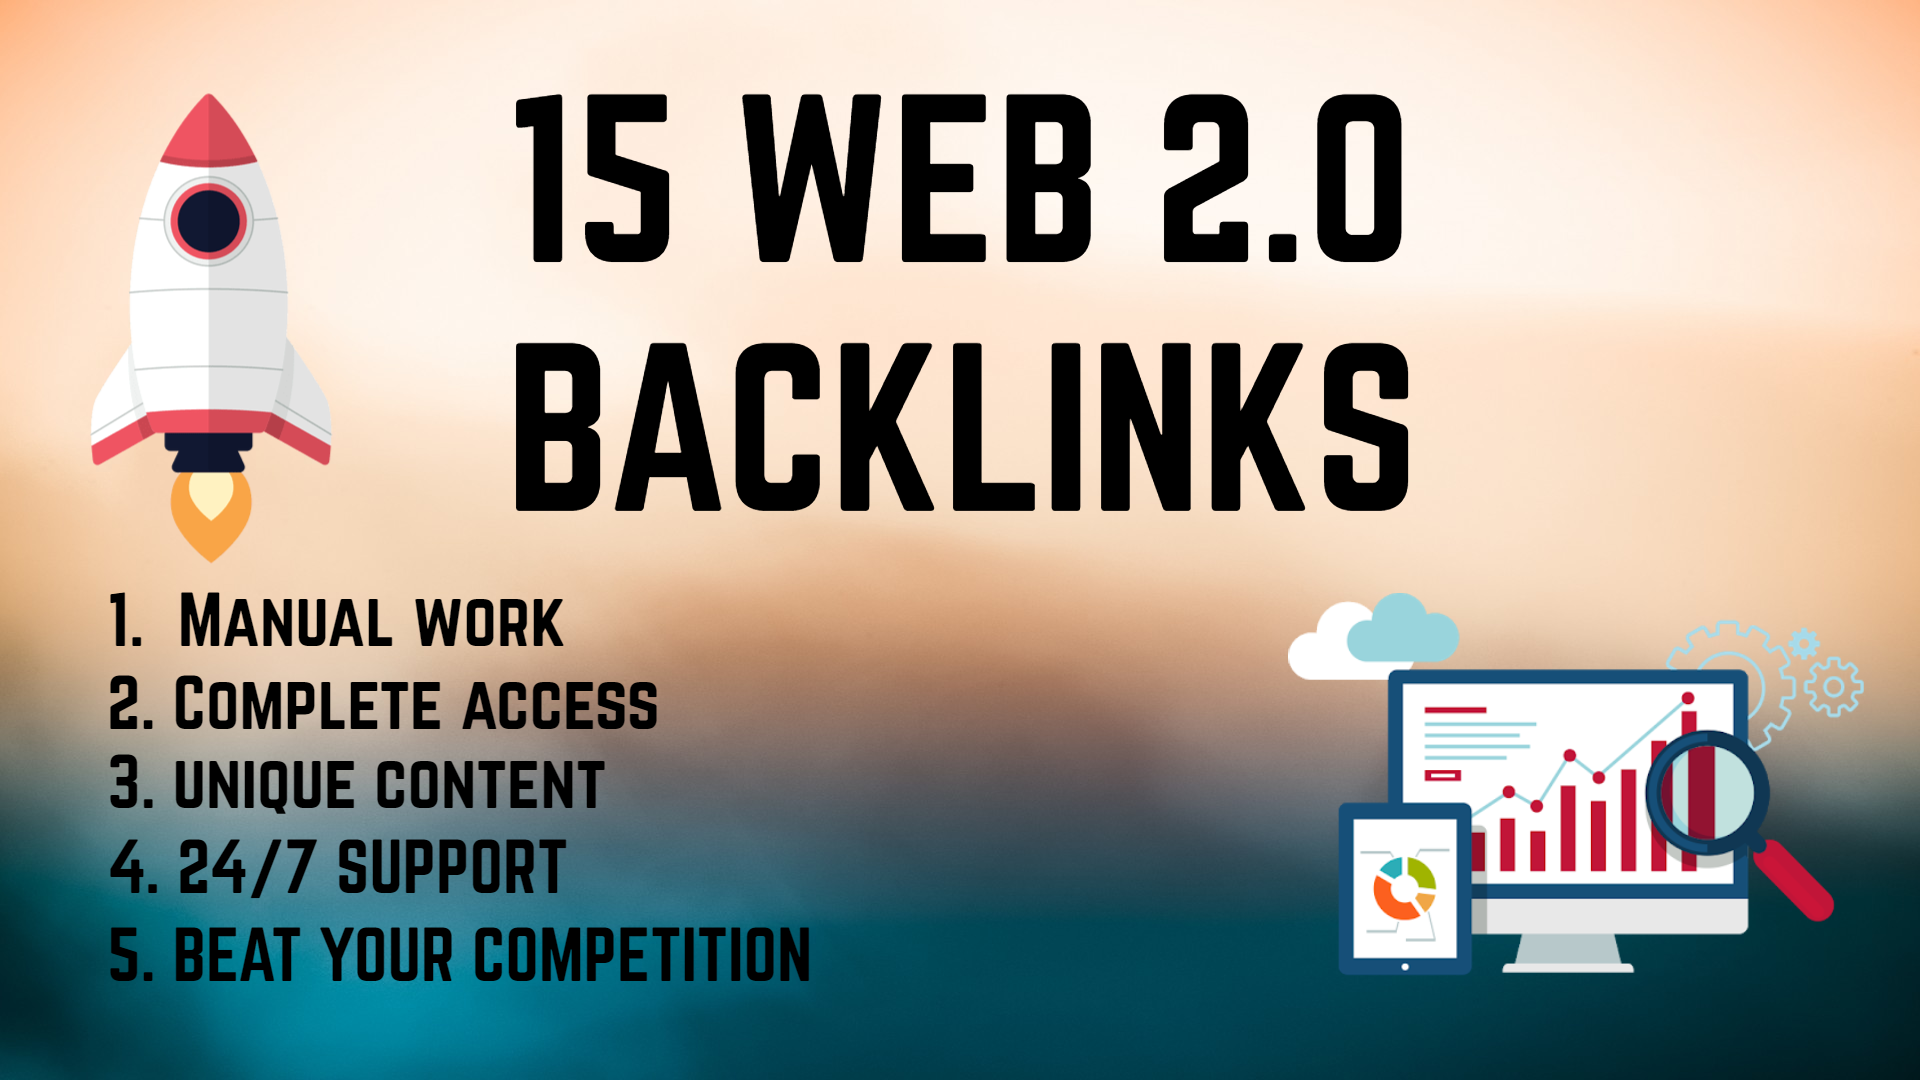 Create 15 web 2.0 backlinks for your site